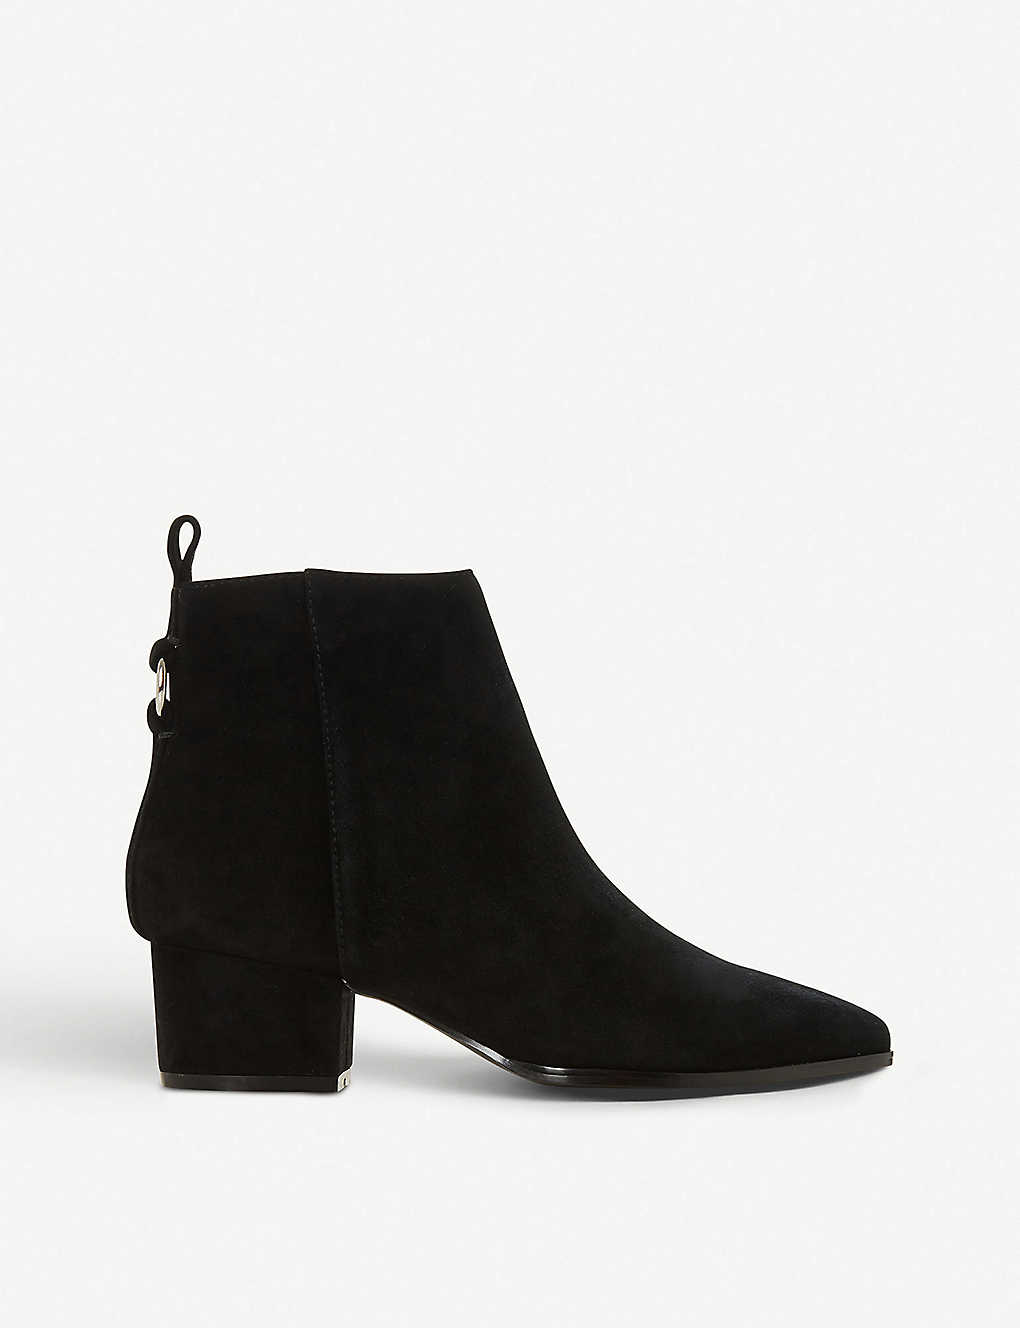 0bcfddfaddb STEVE MADDEN - Clover ring-detail suede ankle boots | Selfridges.com